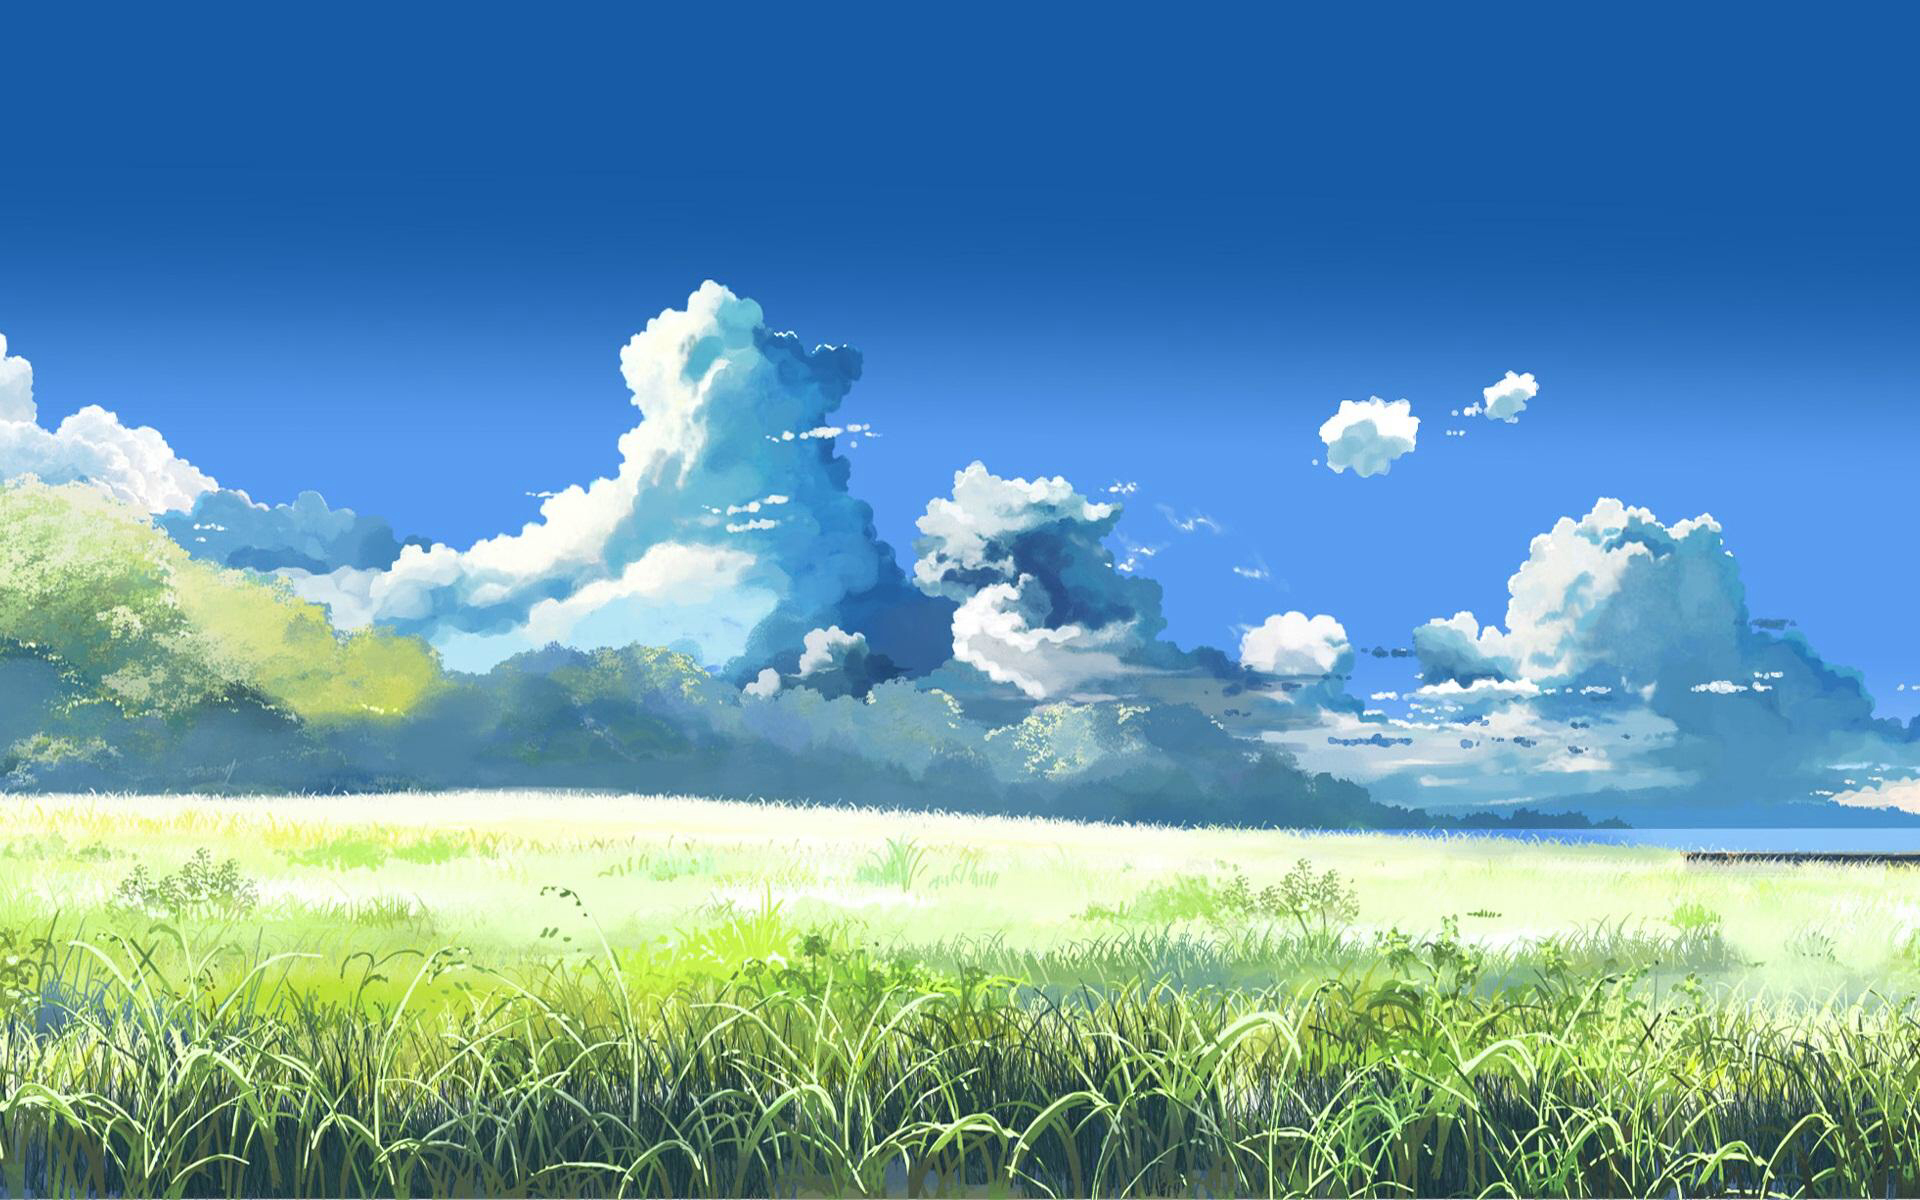 Great Wallpaper Naruto Landscape - latest?cb\u003d20170626164551  Best Photo Reference_95943.jpg/revision/latest?cb\u003d20170626164551